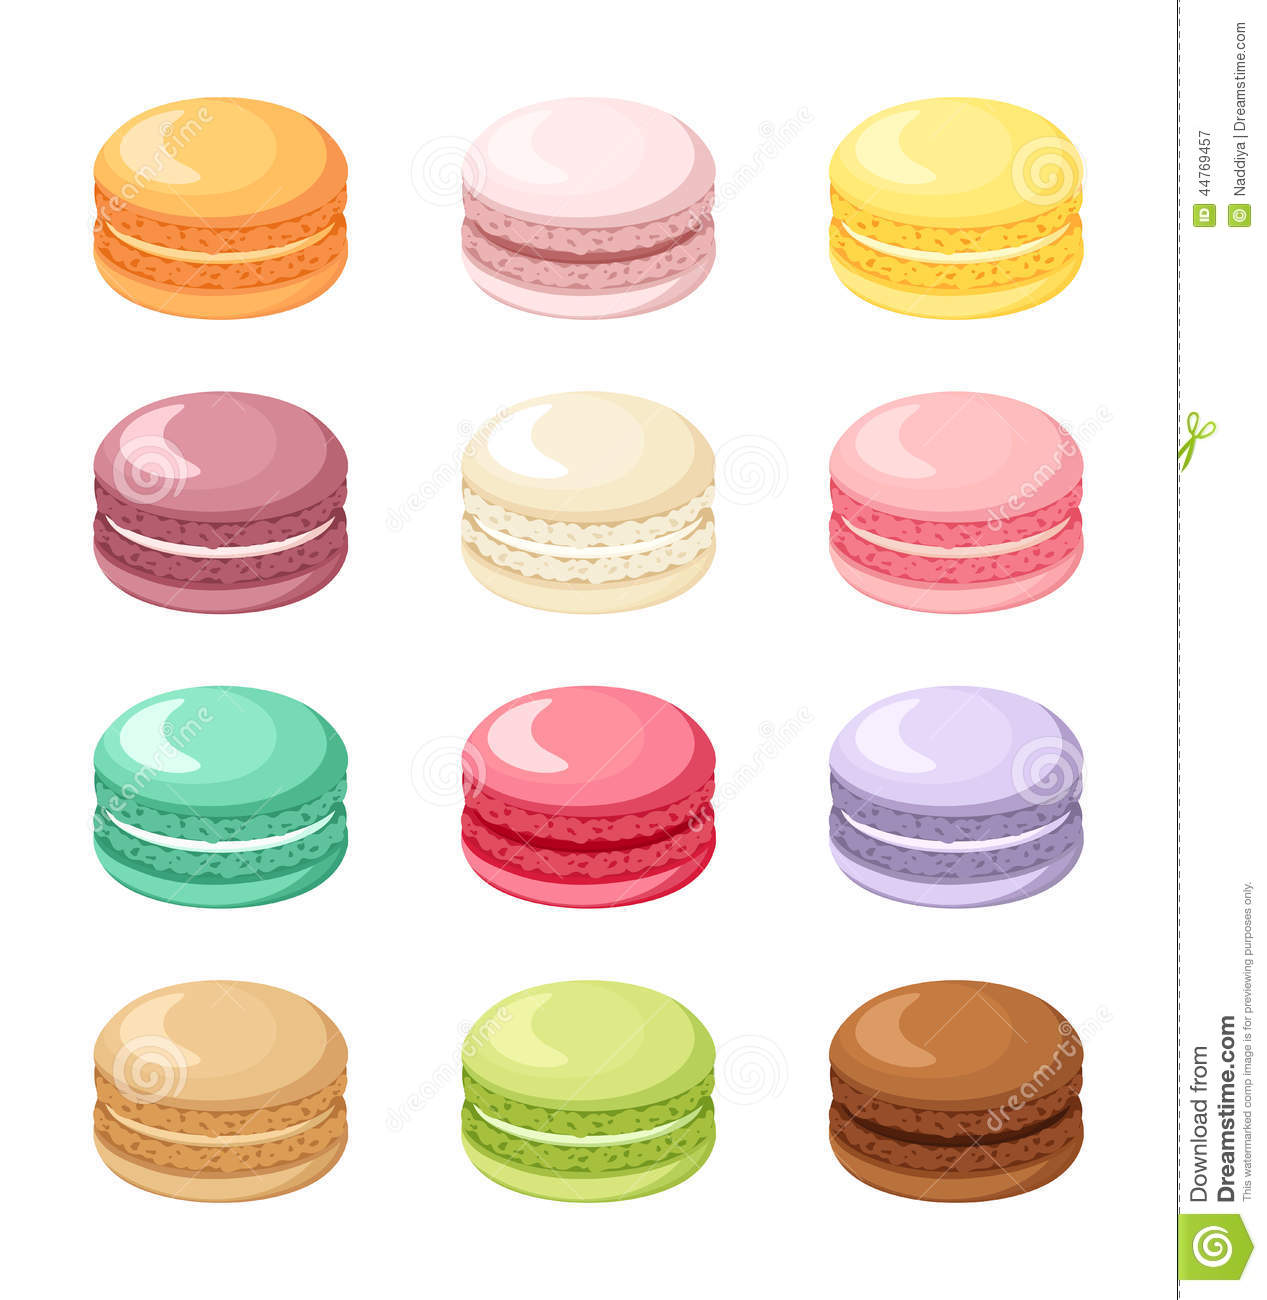 Floor Plan Designers Set Of Colorful French Macaroon Cookies Isolated On White